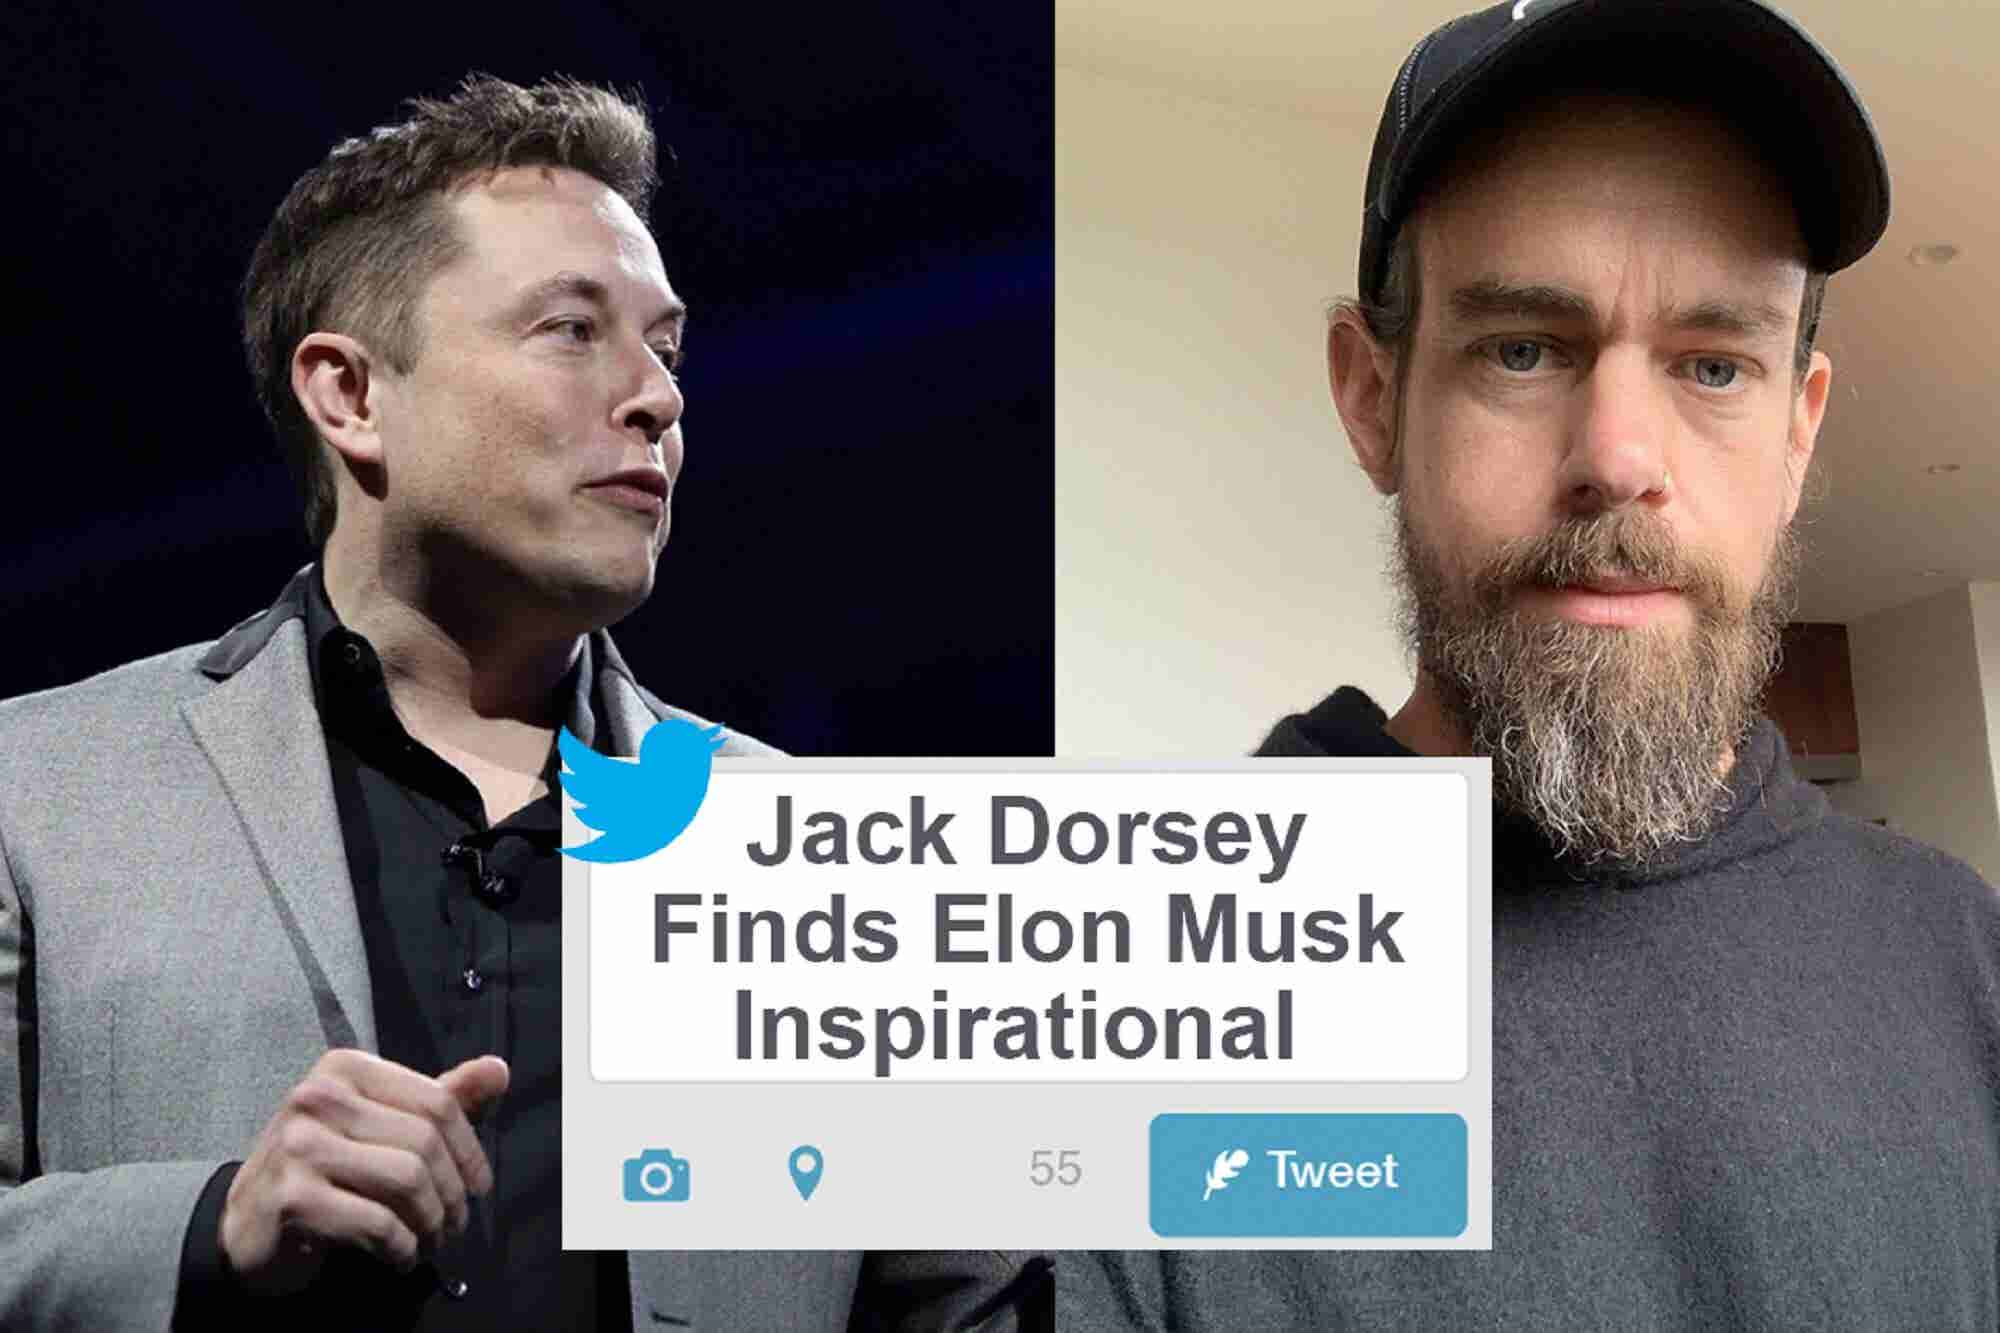 Beyond India: Jack Dorsey Admires Elon Musk's Twitter Strategy & Google Invests in Job Creation